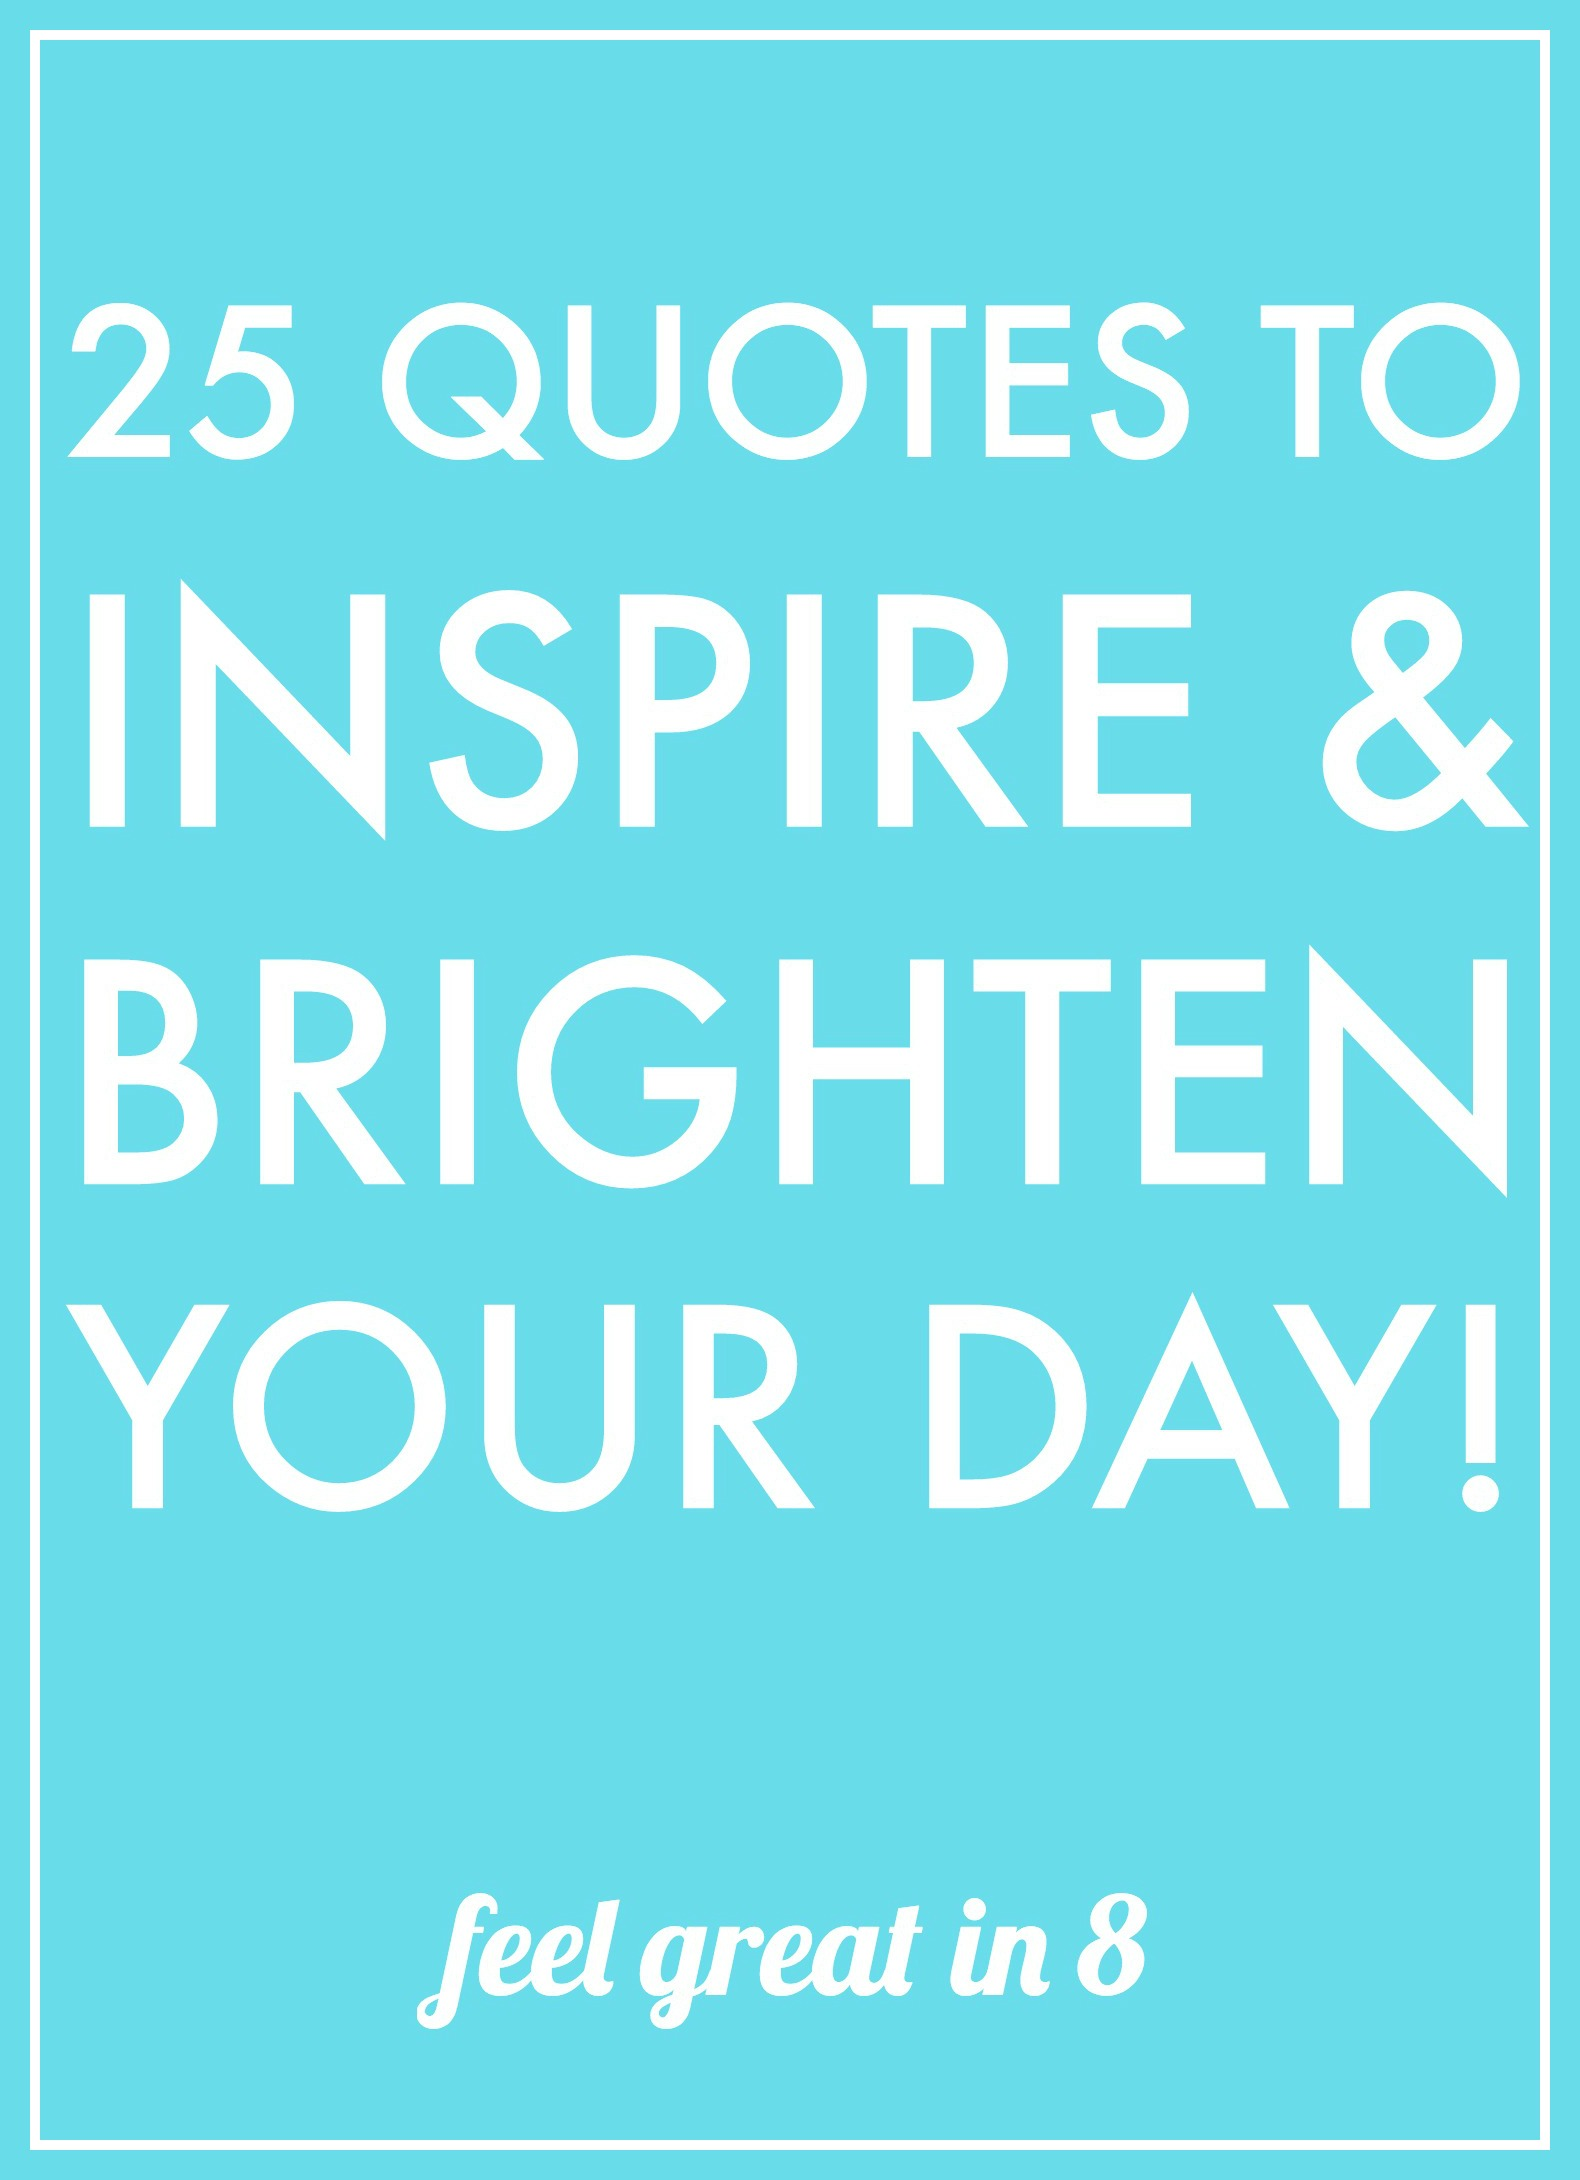 Make A Quote Picture 25 Quotes To Inspire & Brighten Your Day  Feel Great In 8 Blog